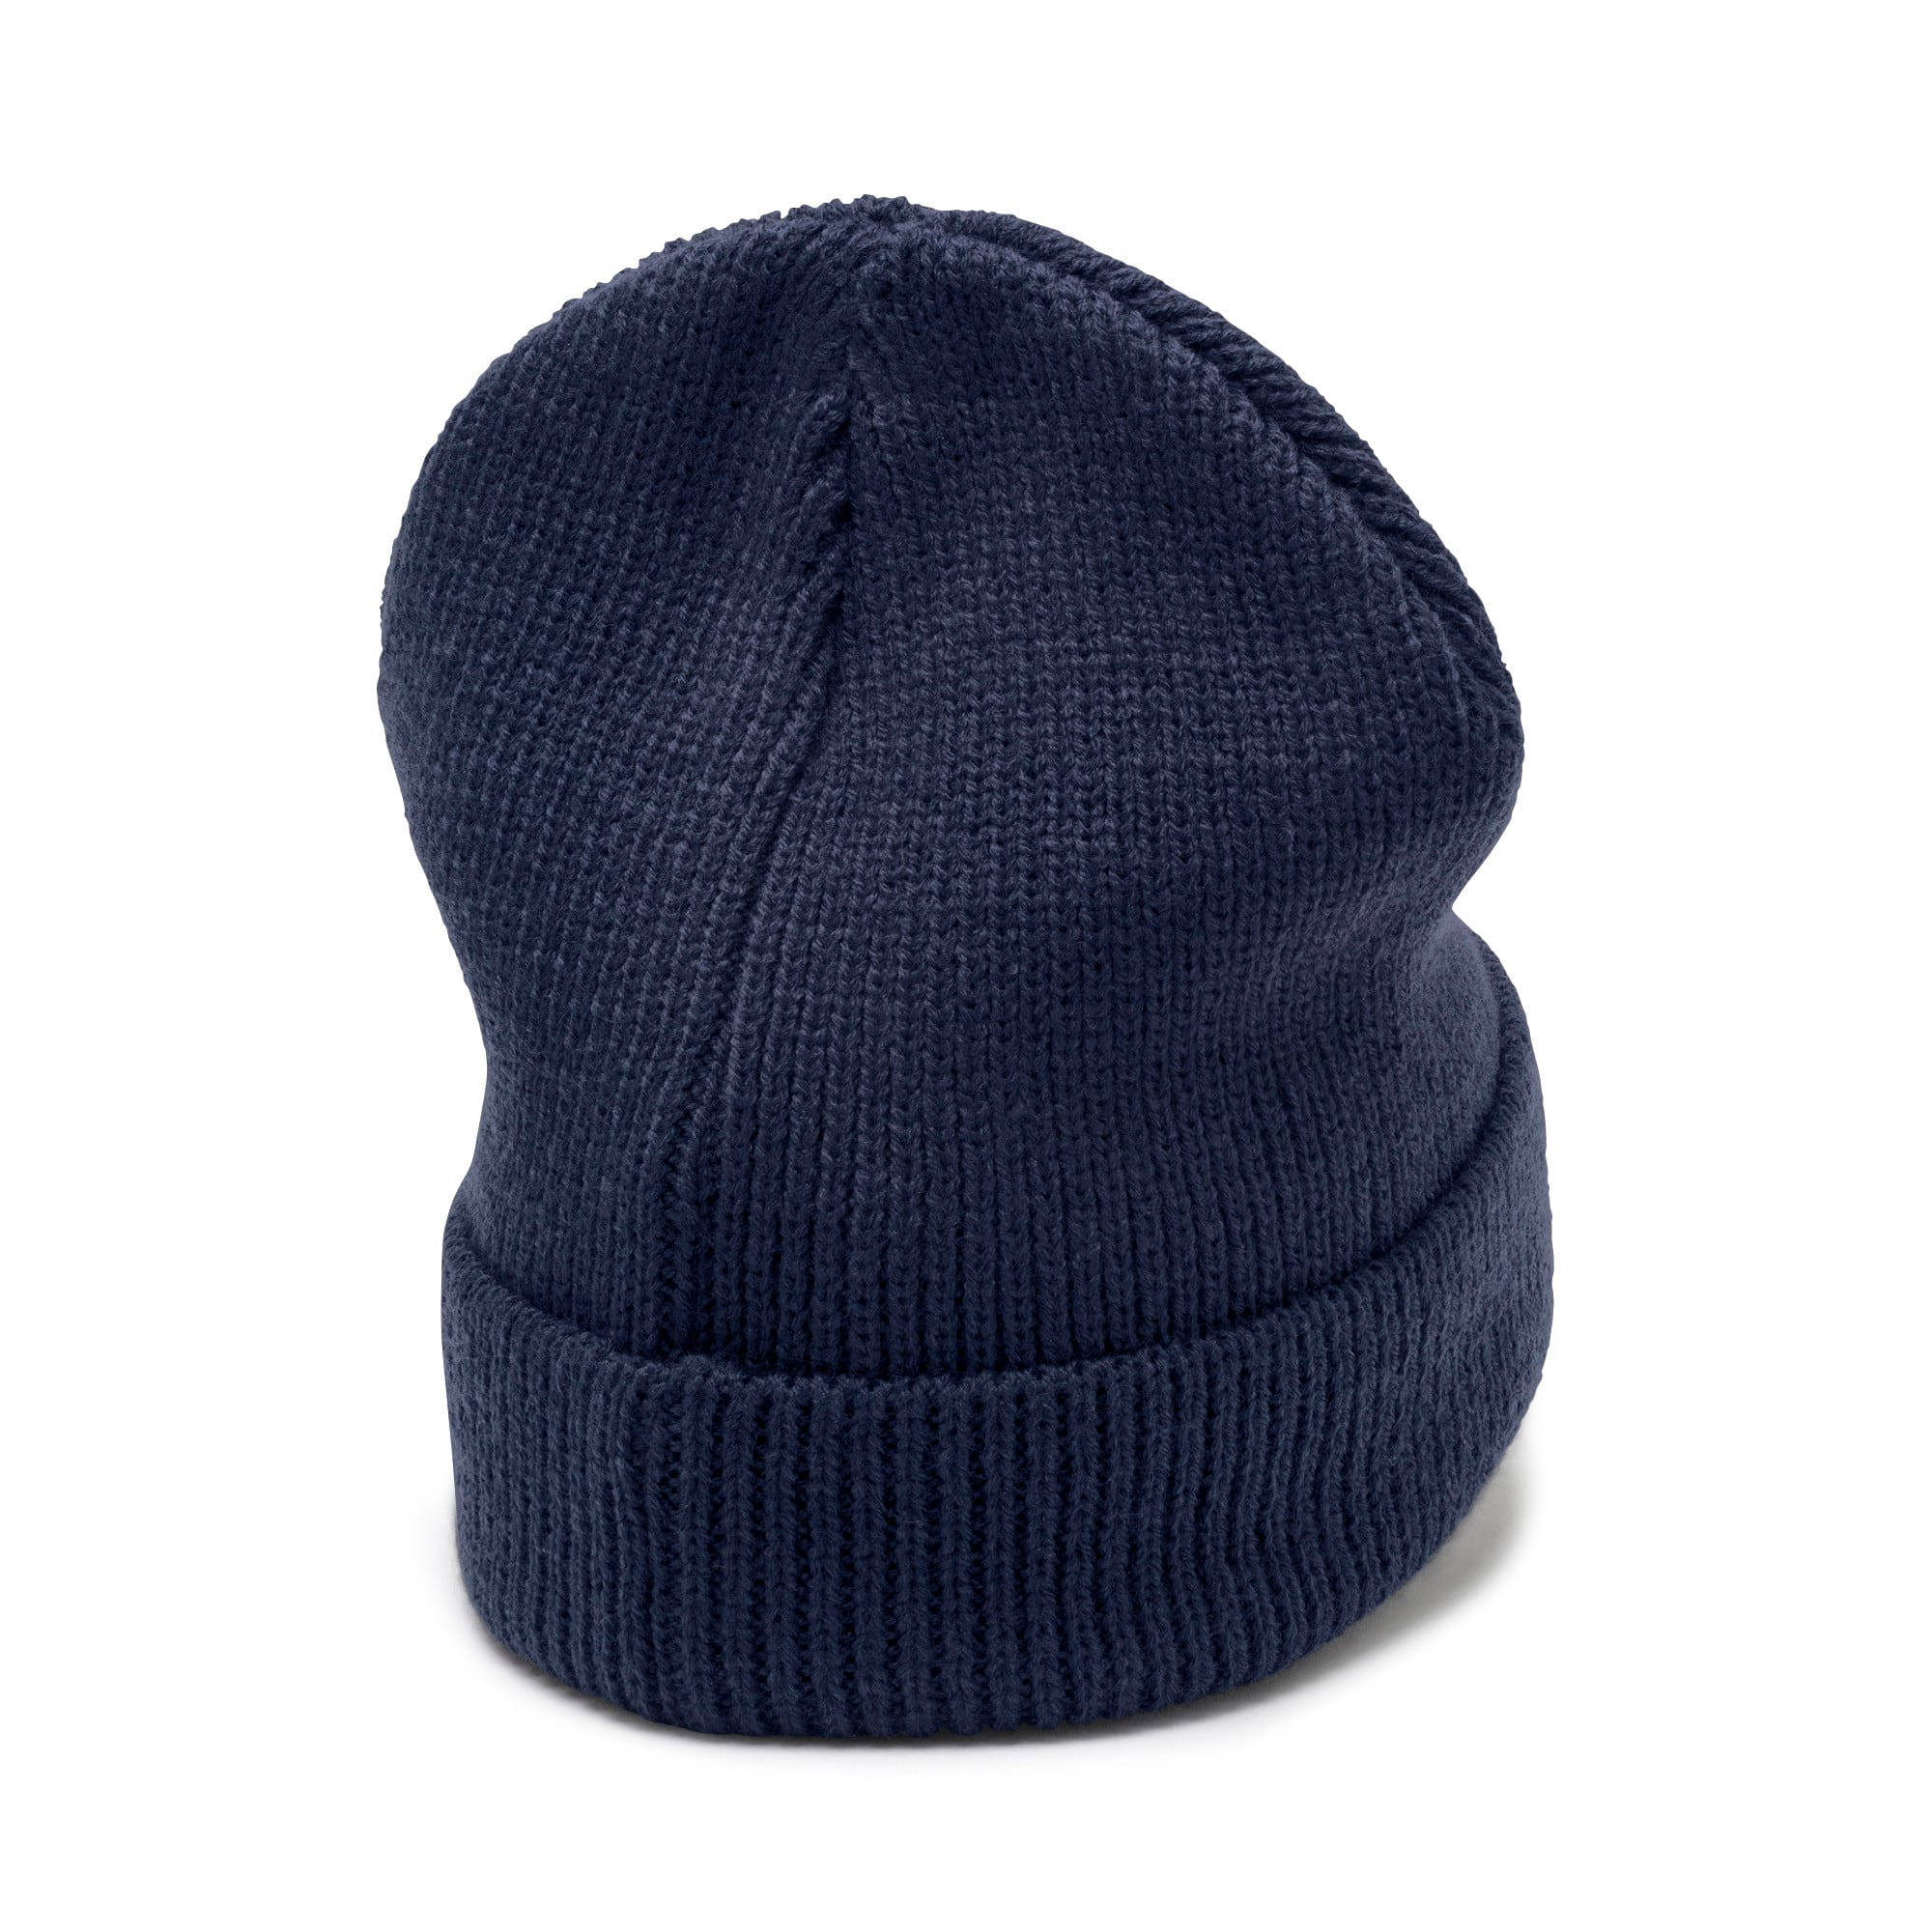 Thumbnail 2 of Classic Ribbed Beanie, Peacoat, medium